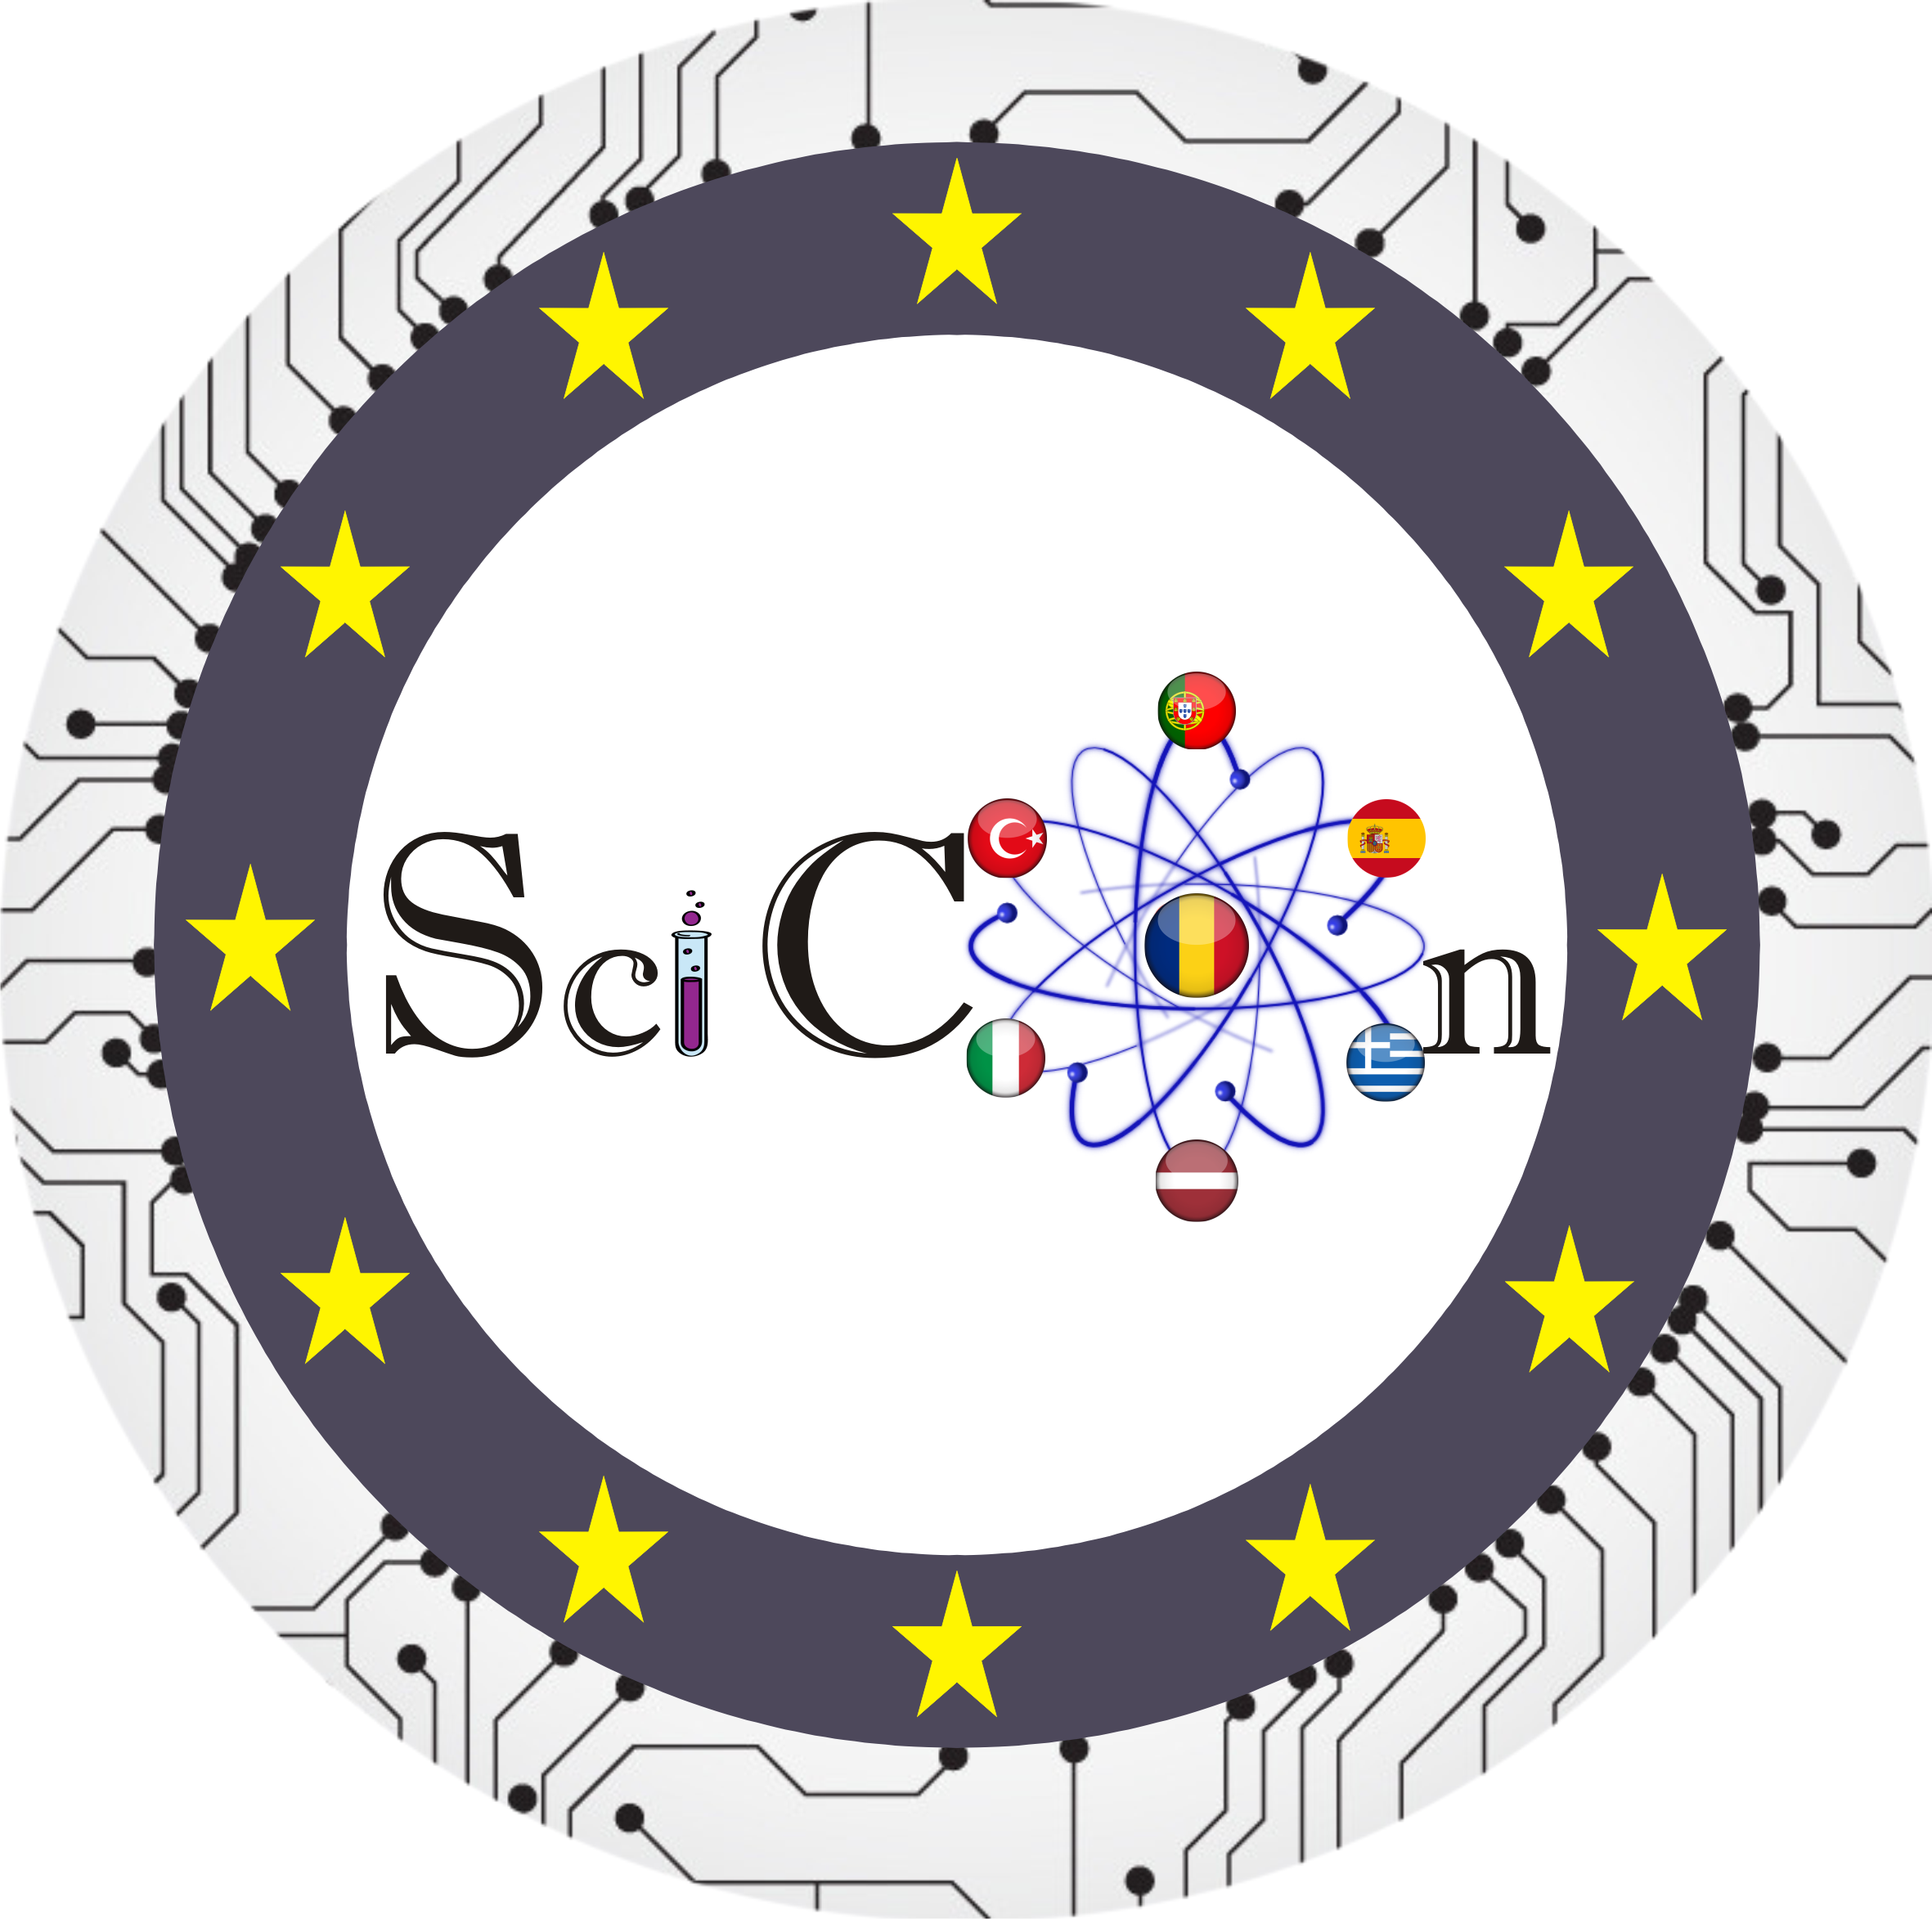 SciCon: Science Connect Project